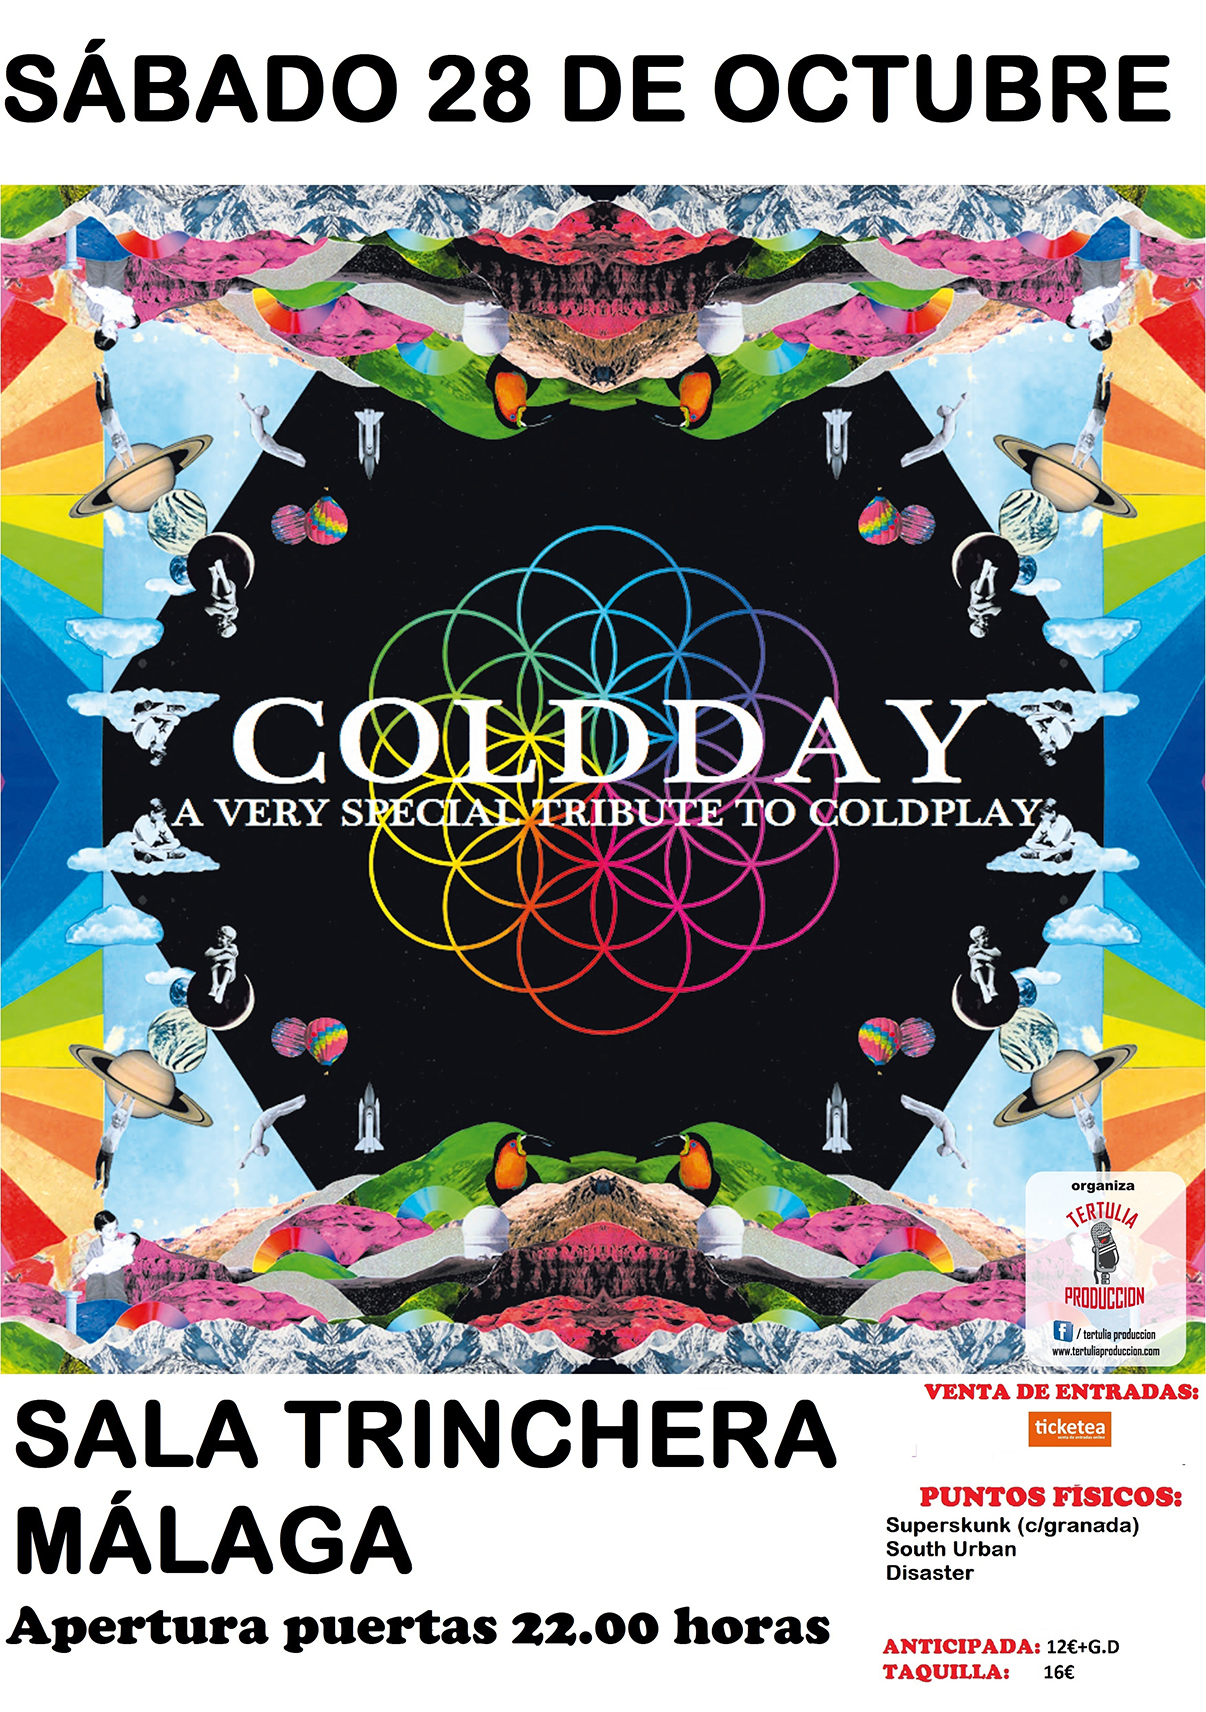 COLDDAY TRINCHERA